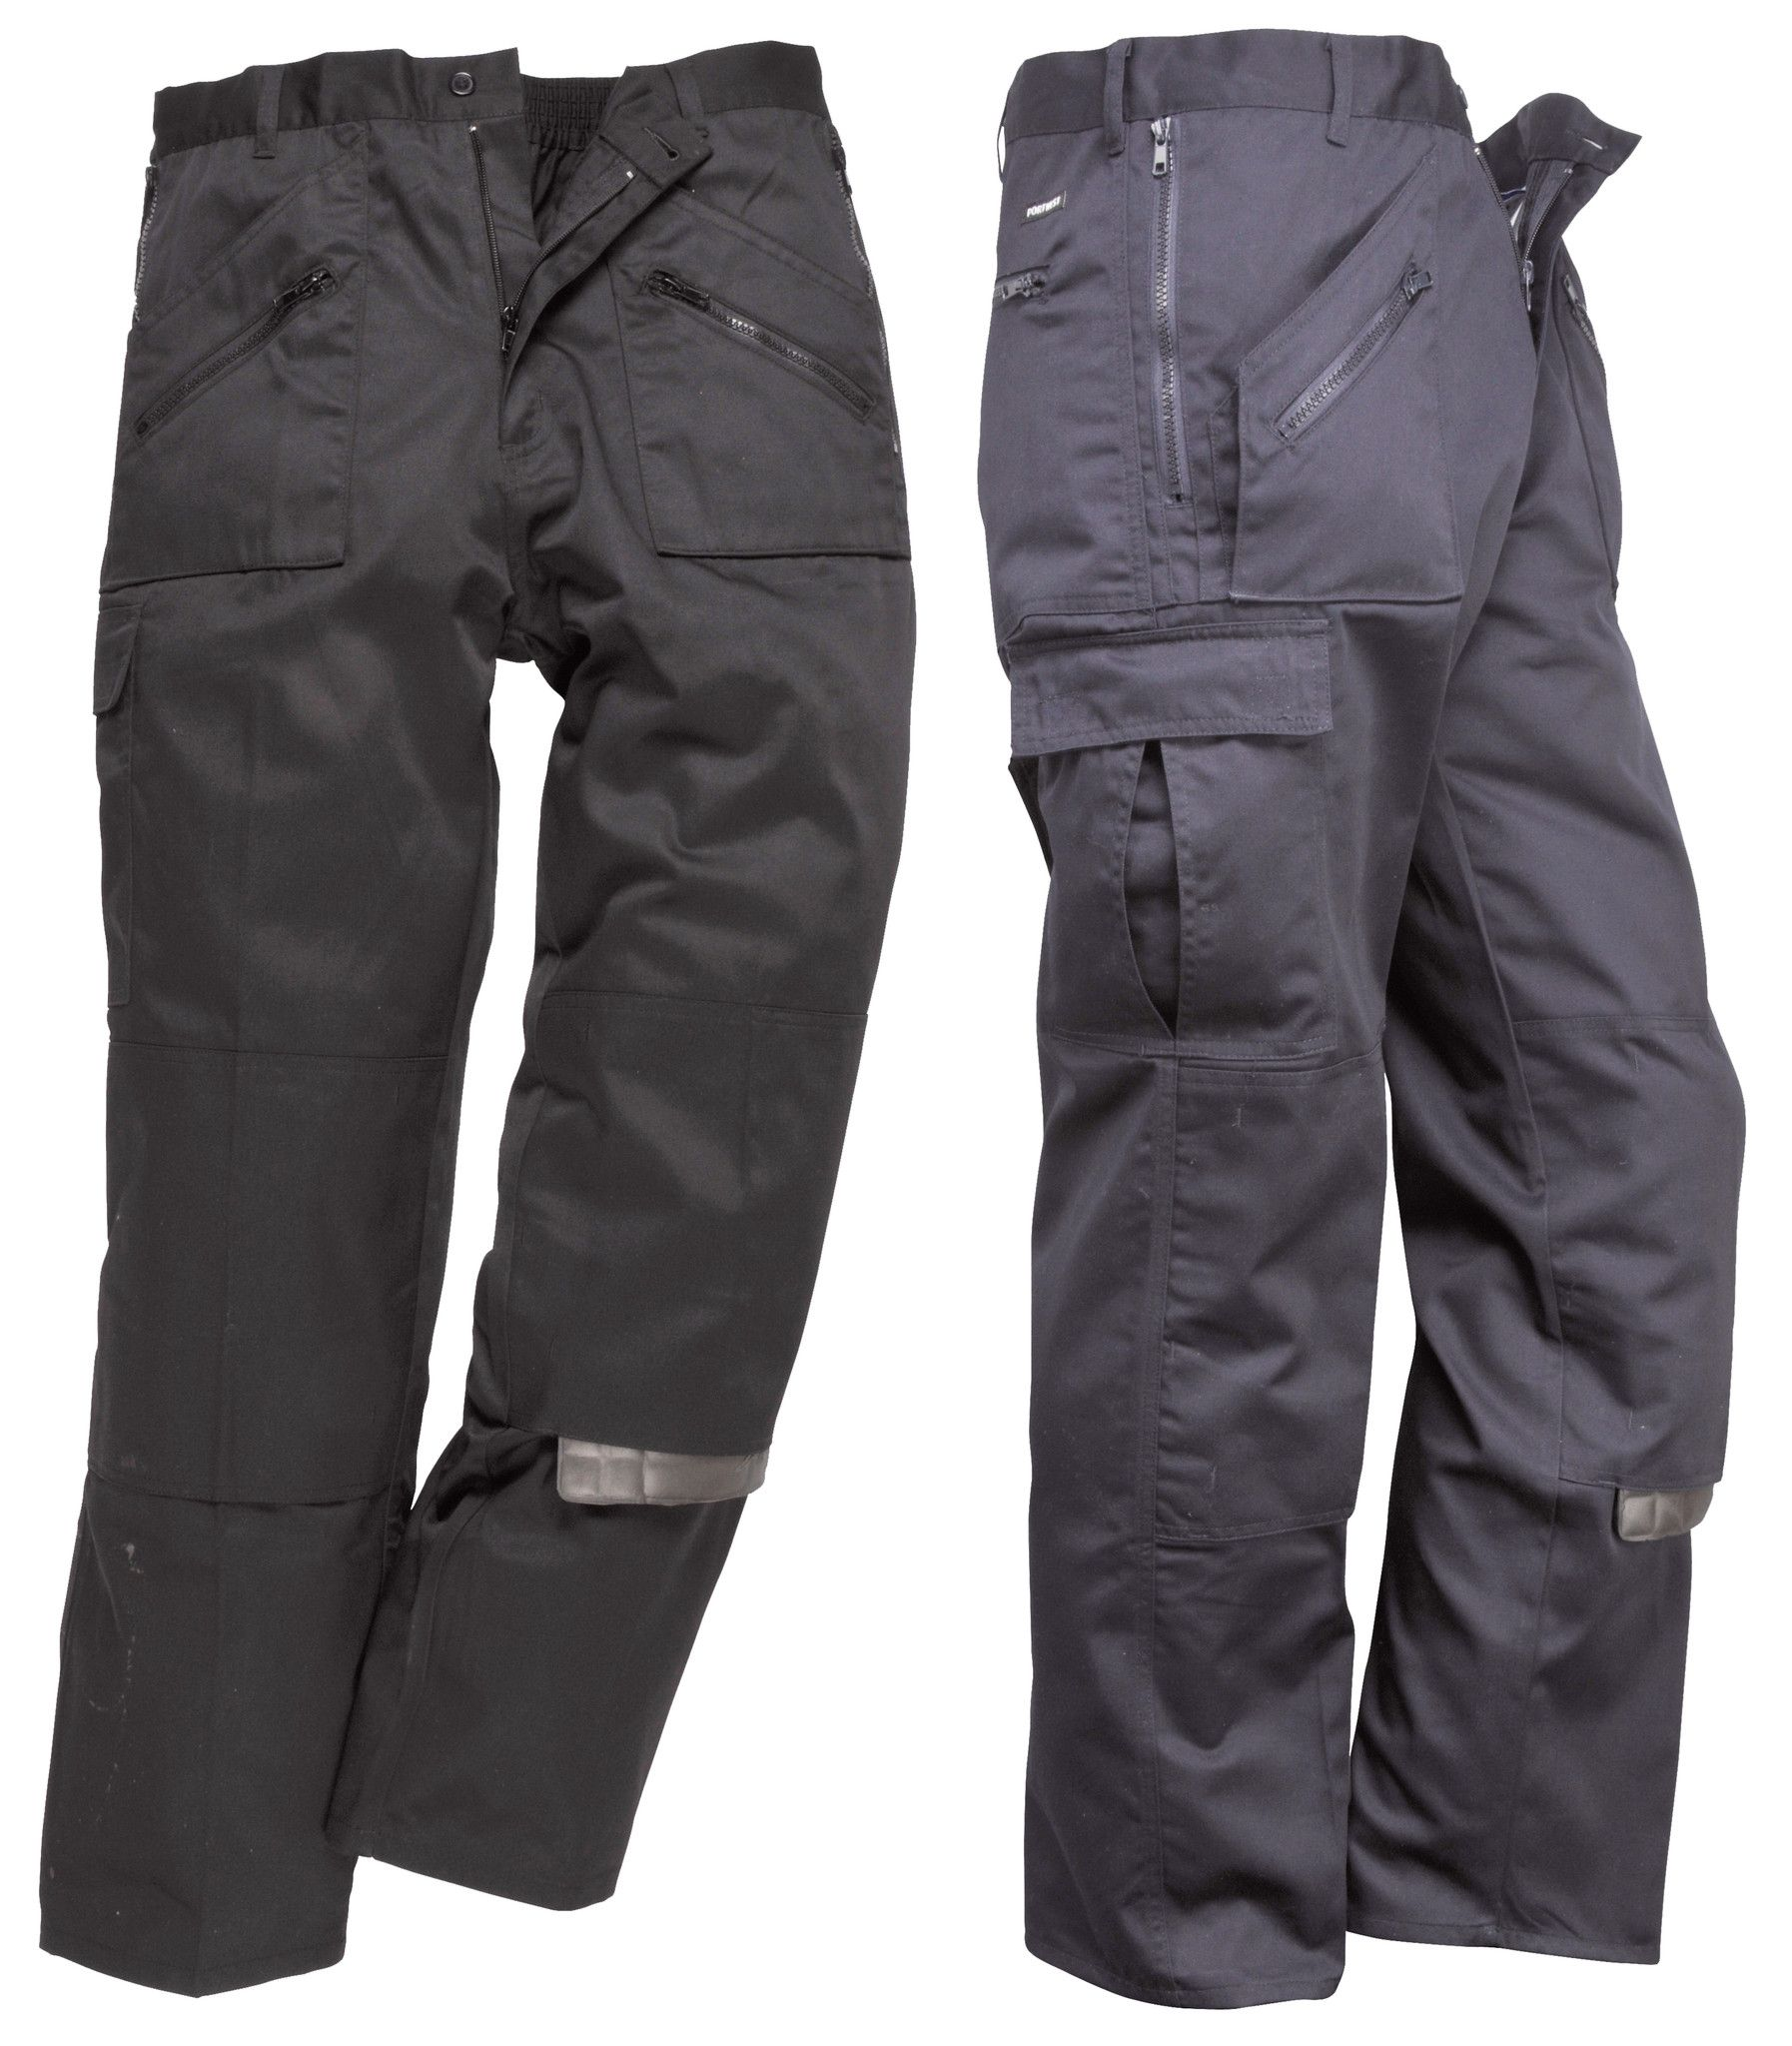 Workwear Action Trousers Knee Pads Pockets Multiple Zip Pockets Pants S887